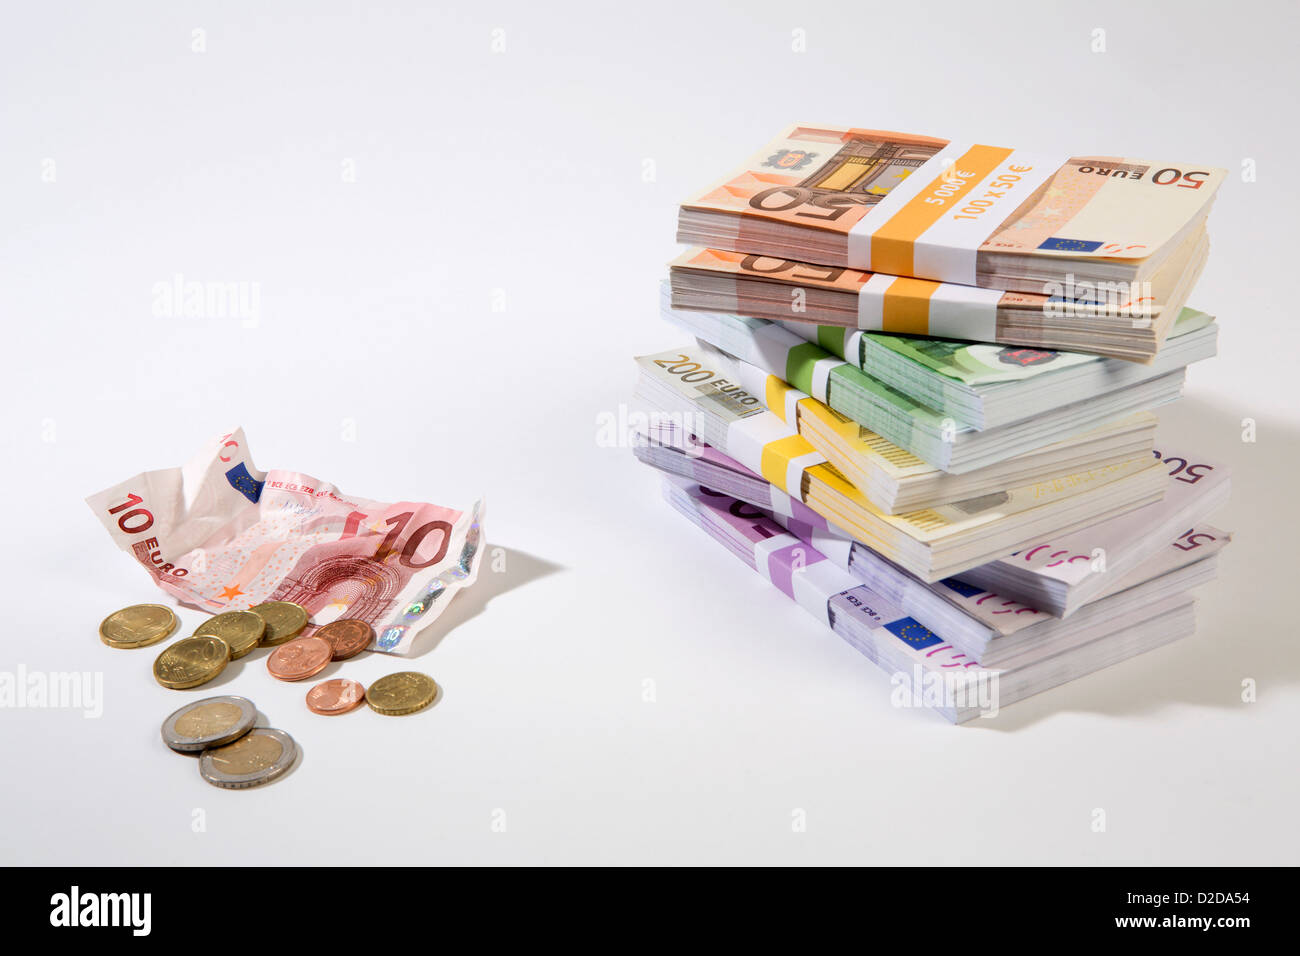 Stack of large billed Euro banknotes next to a crumpled ten note and change - Stock Image